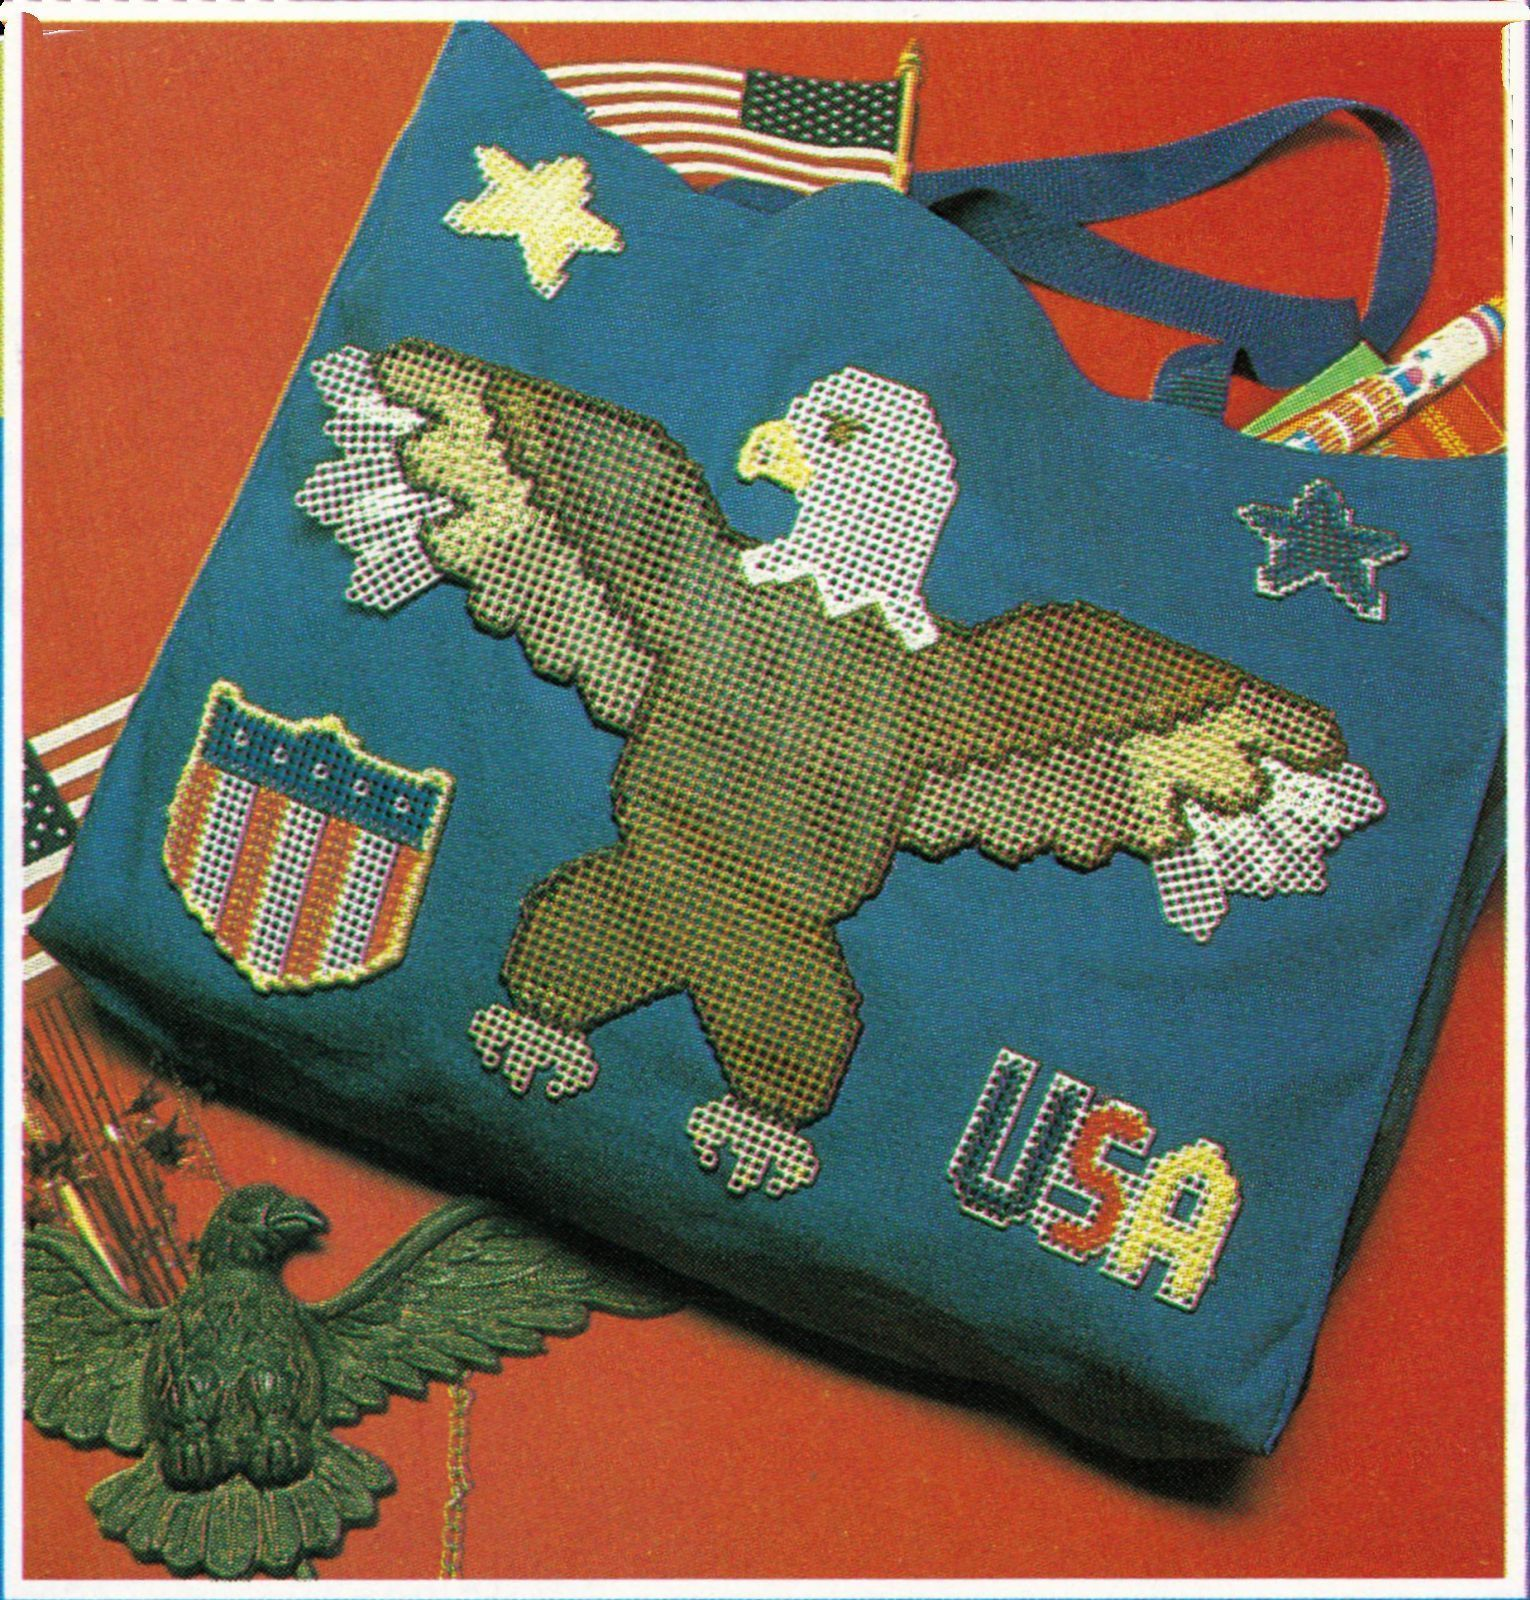 Primary image for Plastic Canvas Patriotic Eagle Tote Flag Star Box Ornament Picnic Holder Pattern